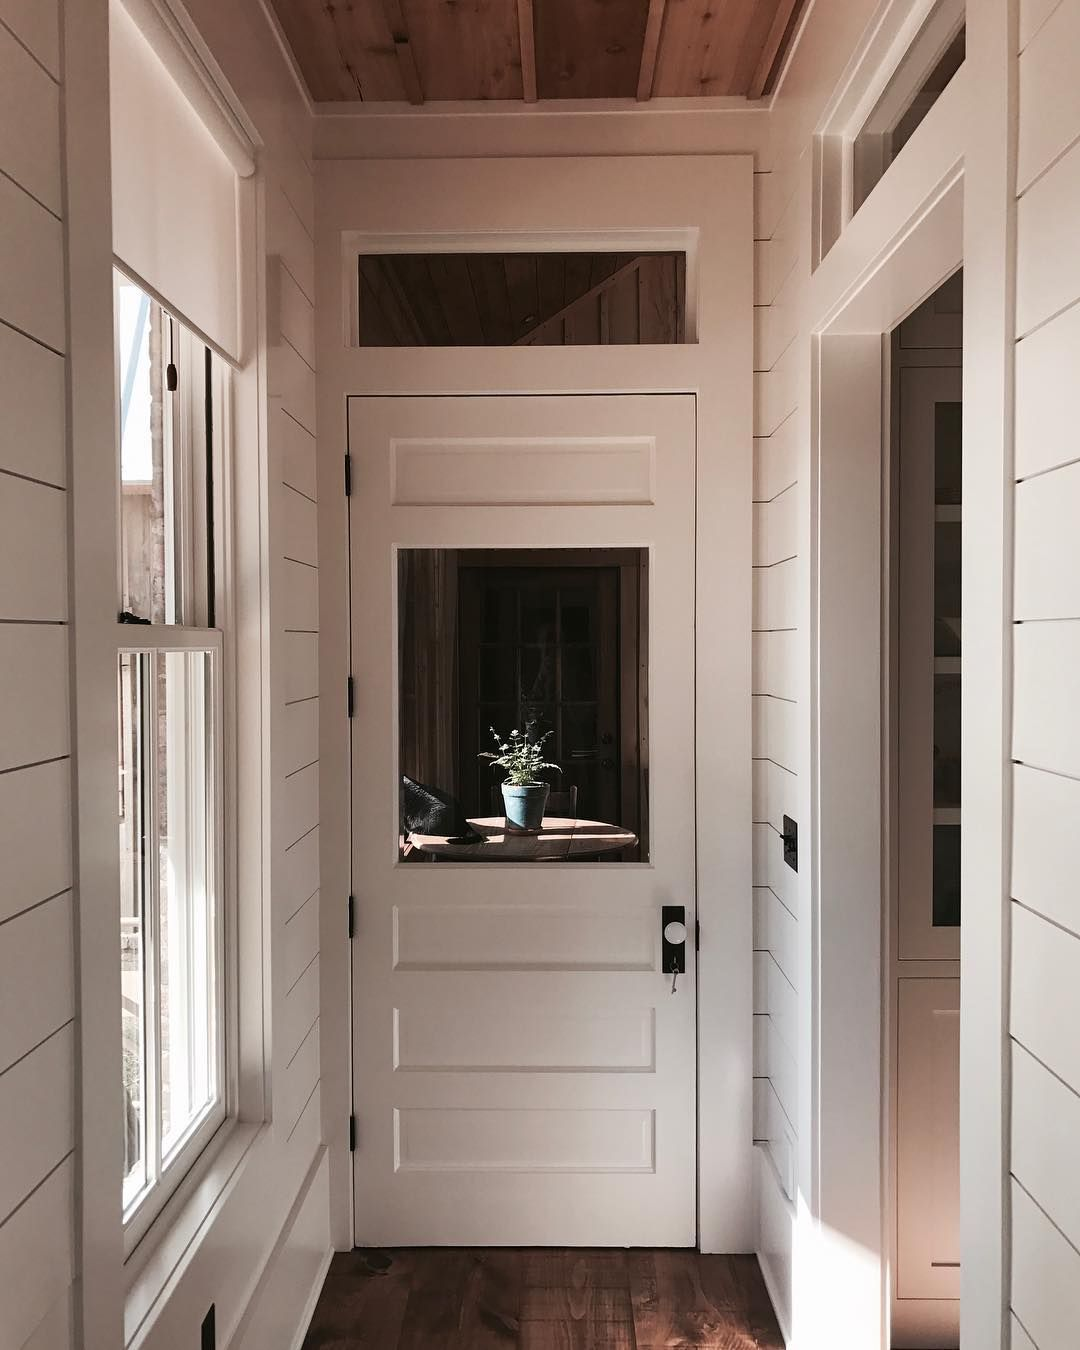 Farmhouse style arched door opening in foyer. panel column